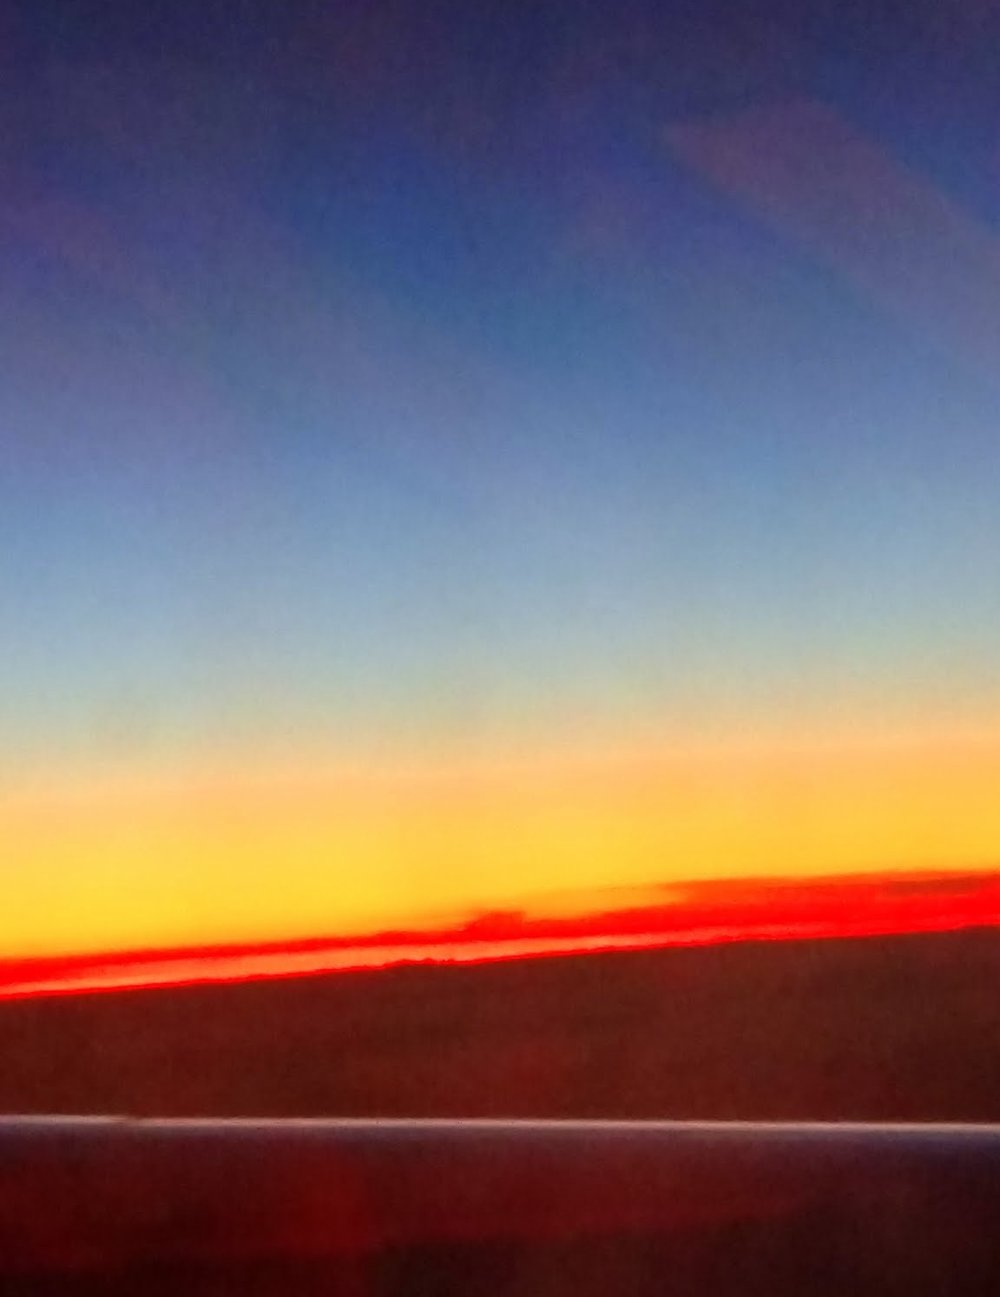 Sunrise over the Spanish Countryside at 12:43 AM EST Like a lake of fie, awe inspiring!